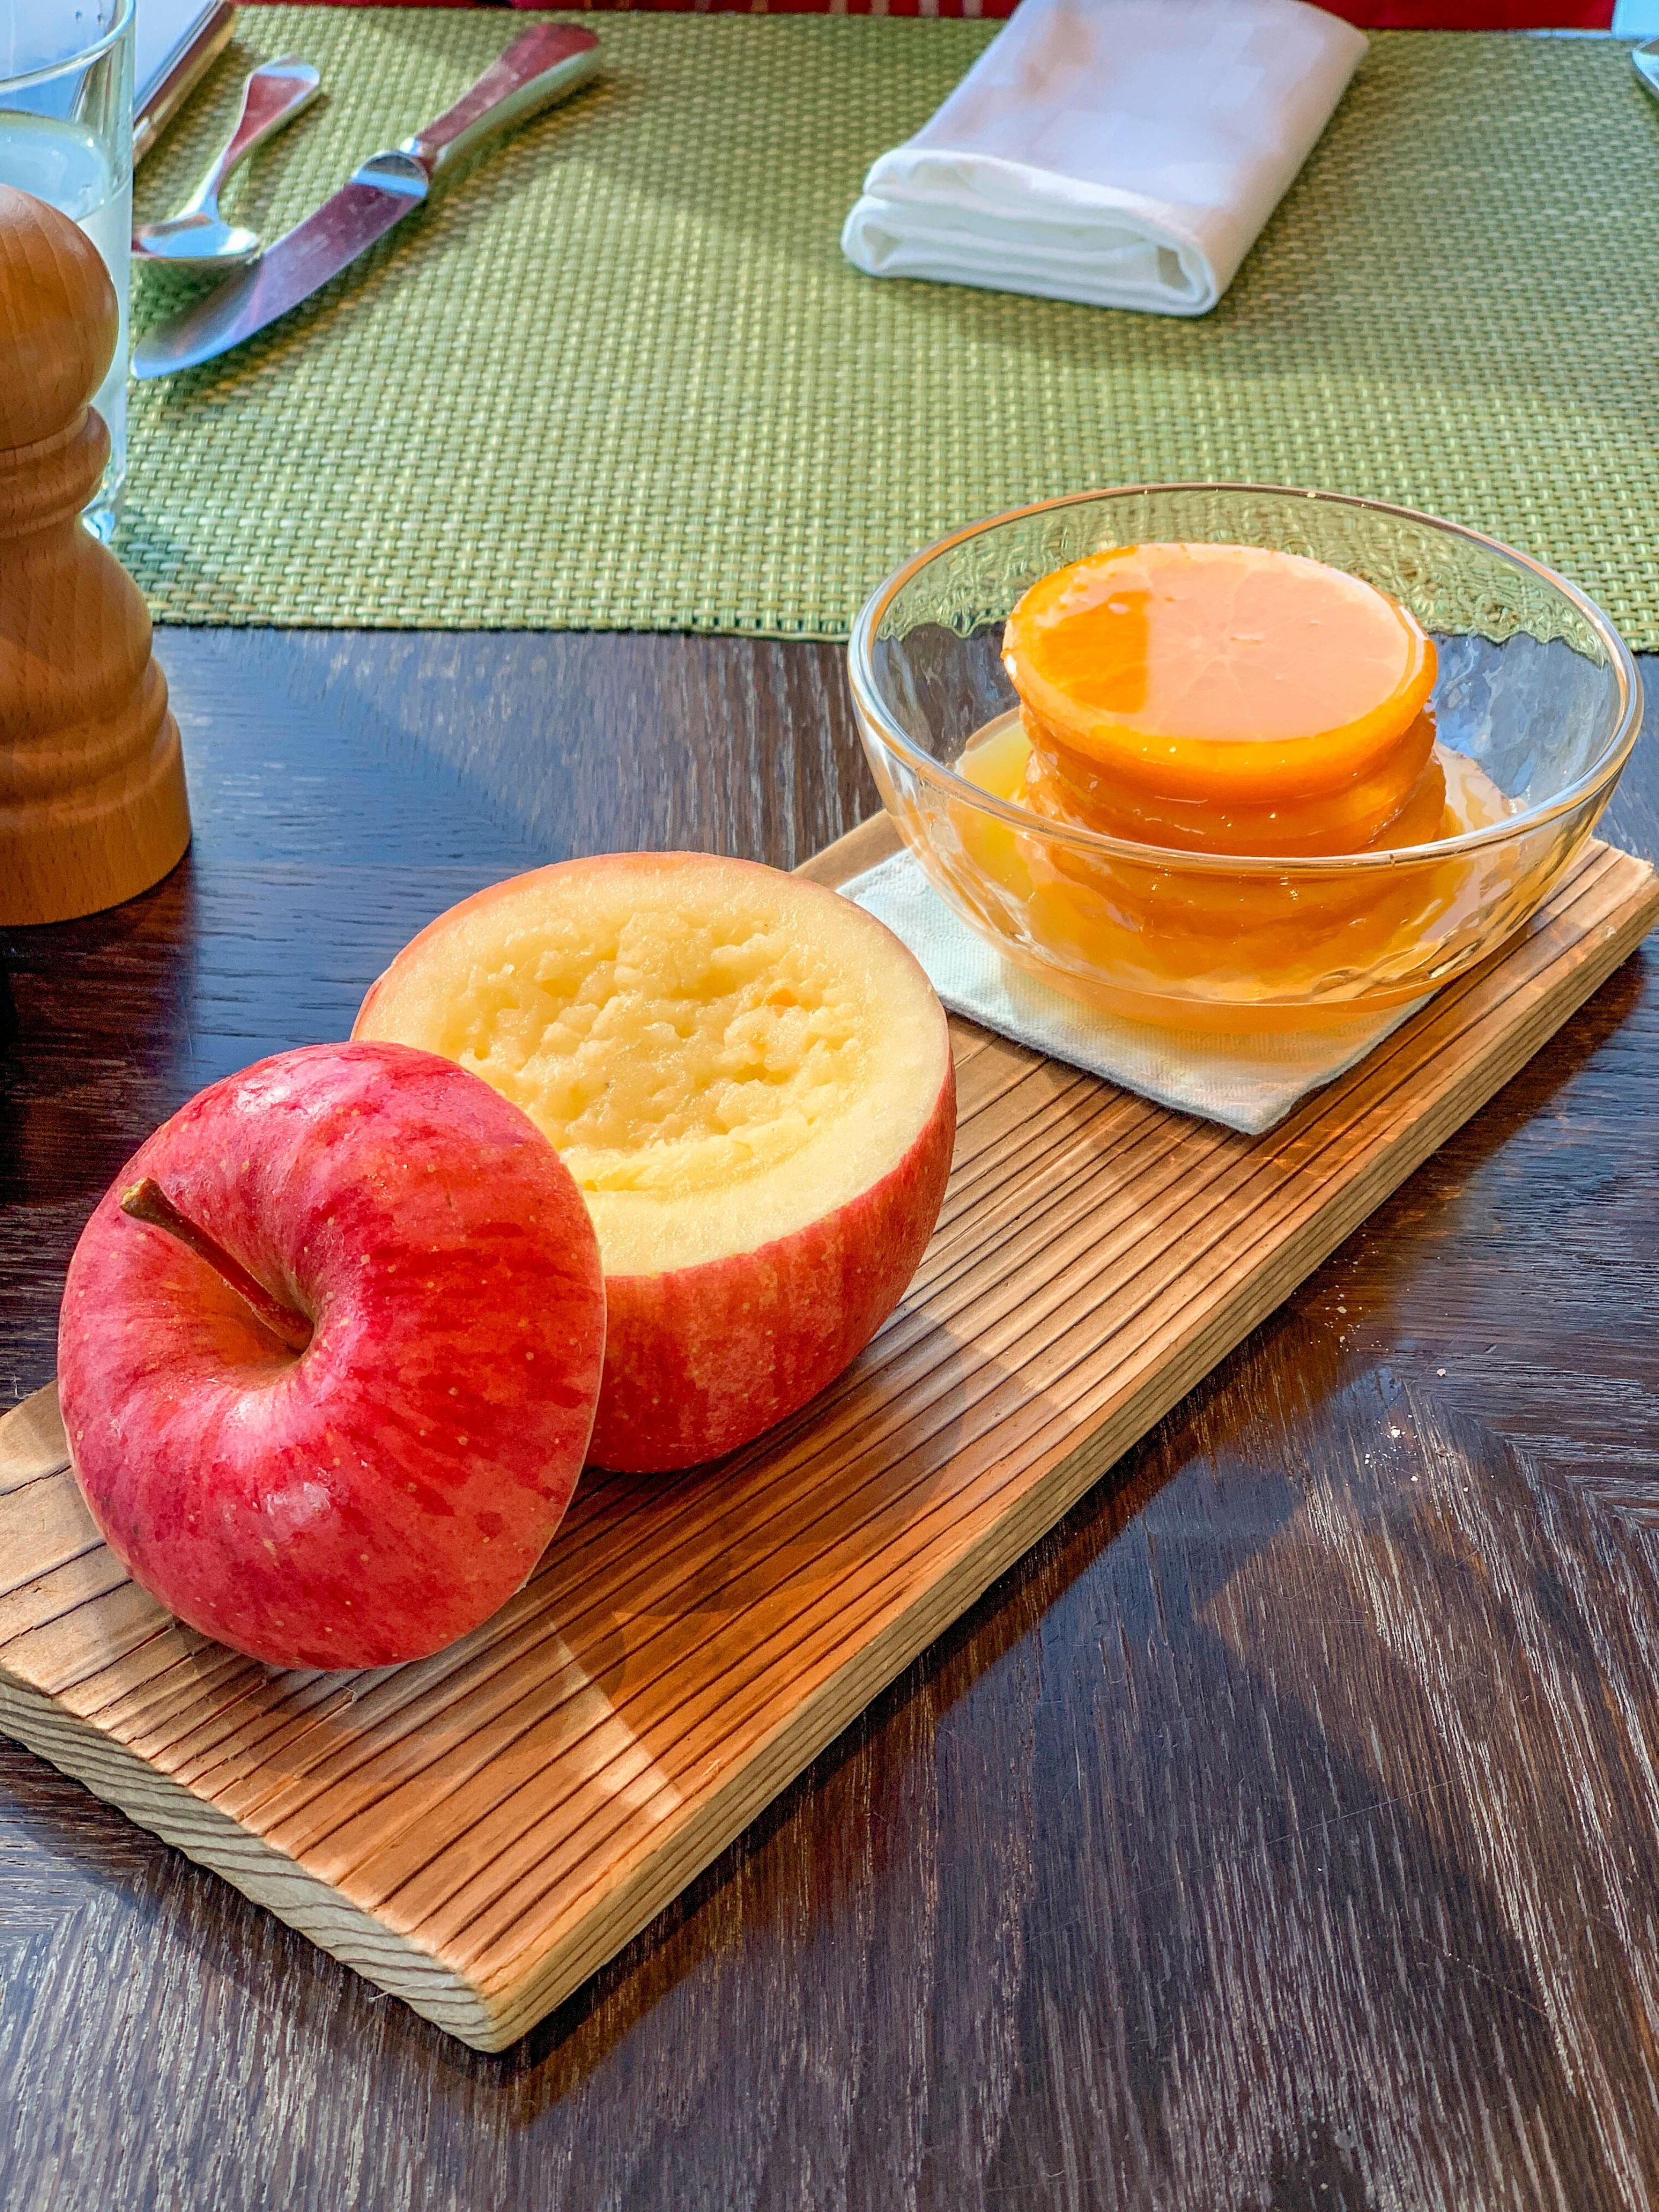 Complimentary apple compote and sweet oranges on a wood plank are given to guests at breakfast at Four Seasons Hotel Tokyo at Marunouchi.